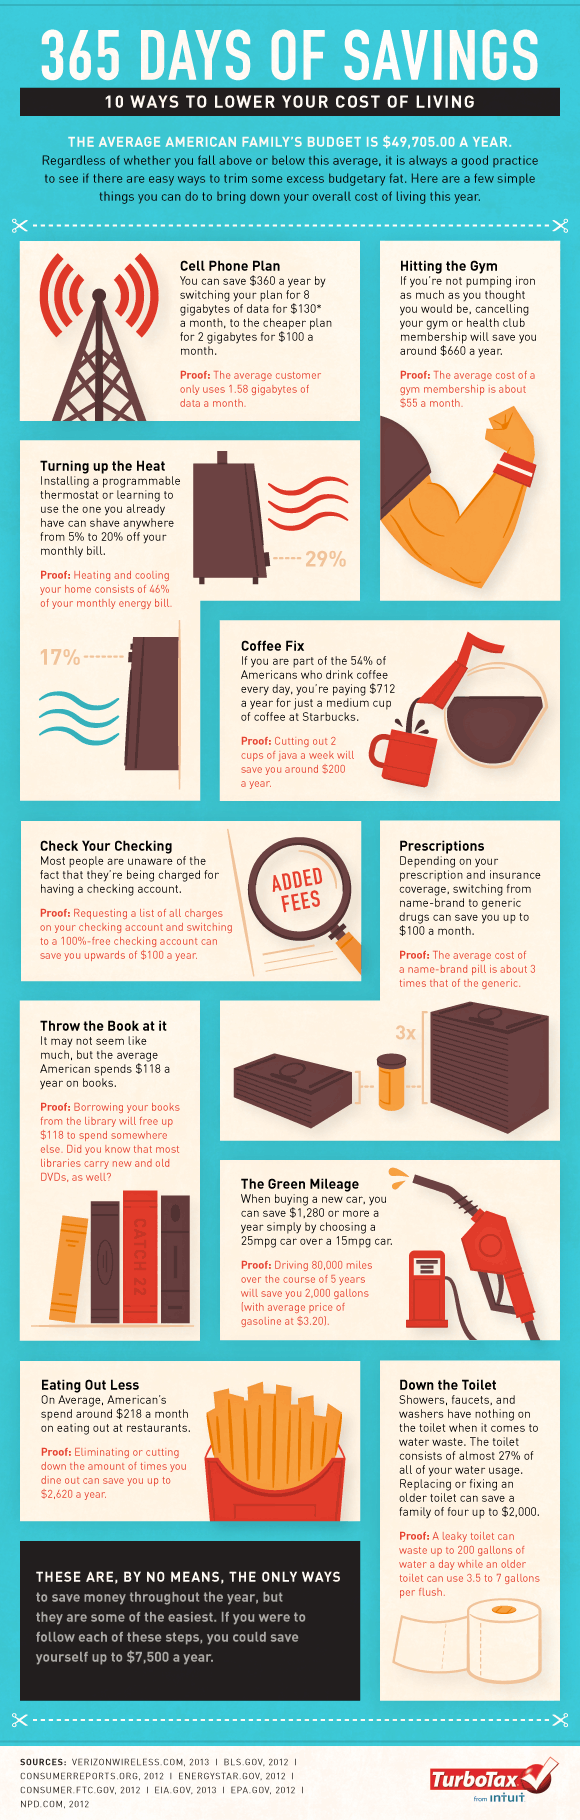 10 Ways to Save [INFOGRAPHIC] 10 Steps to Bring Down Your Living Costs